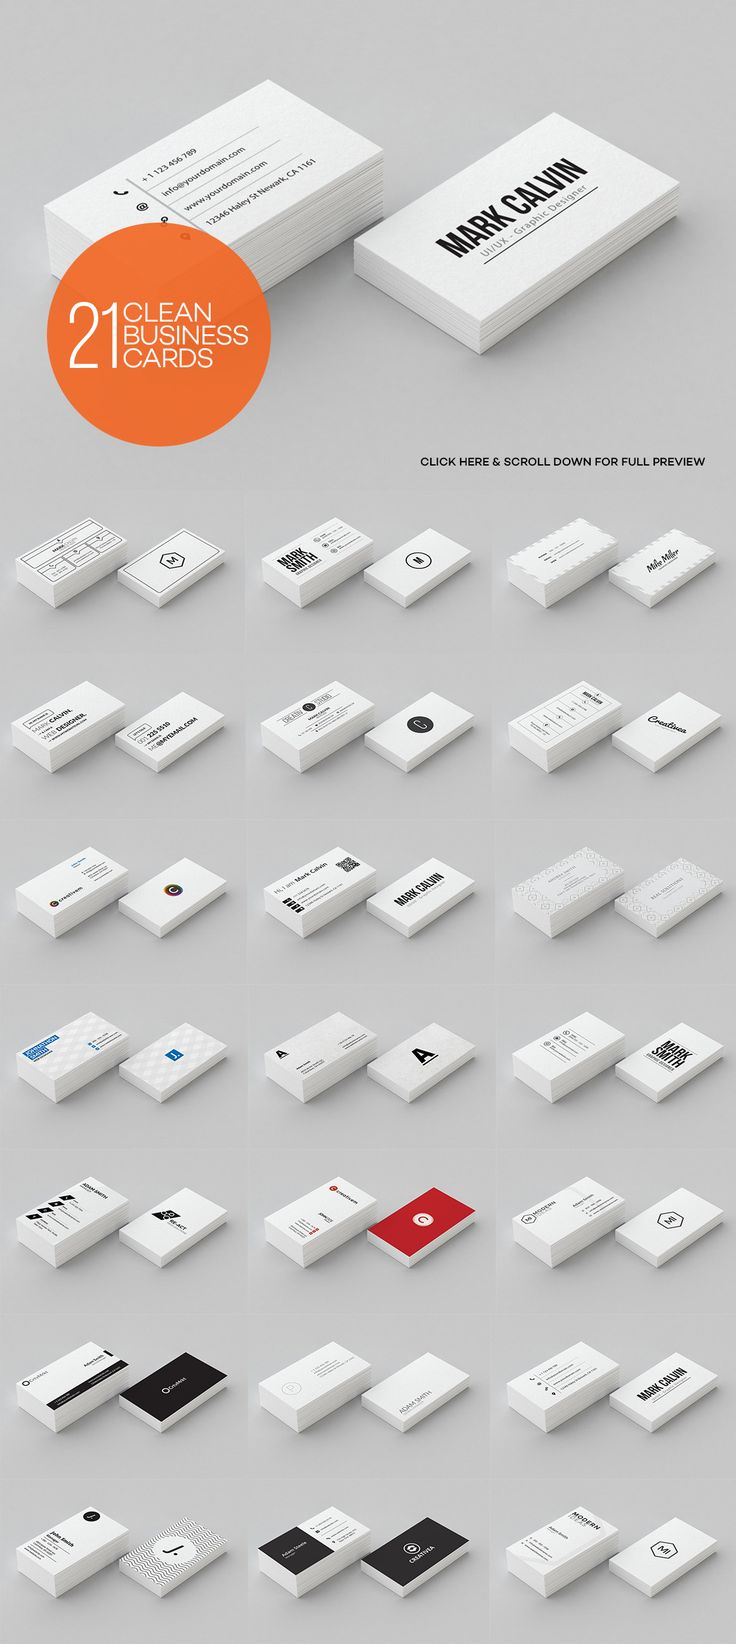 15 best Simple business cards, Logos images on Pinterest | Simple ...